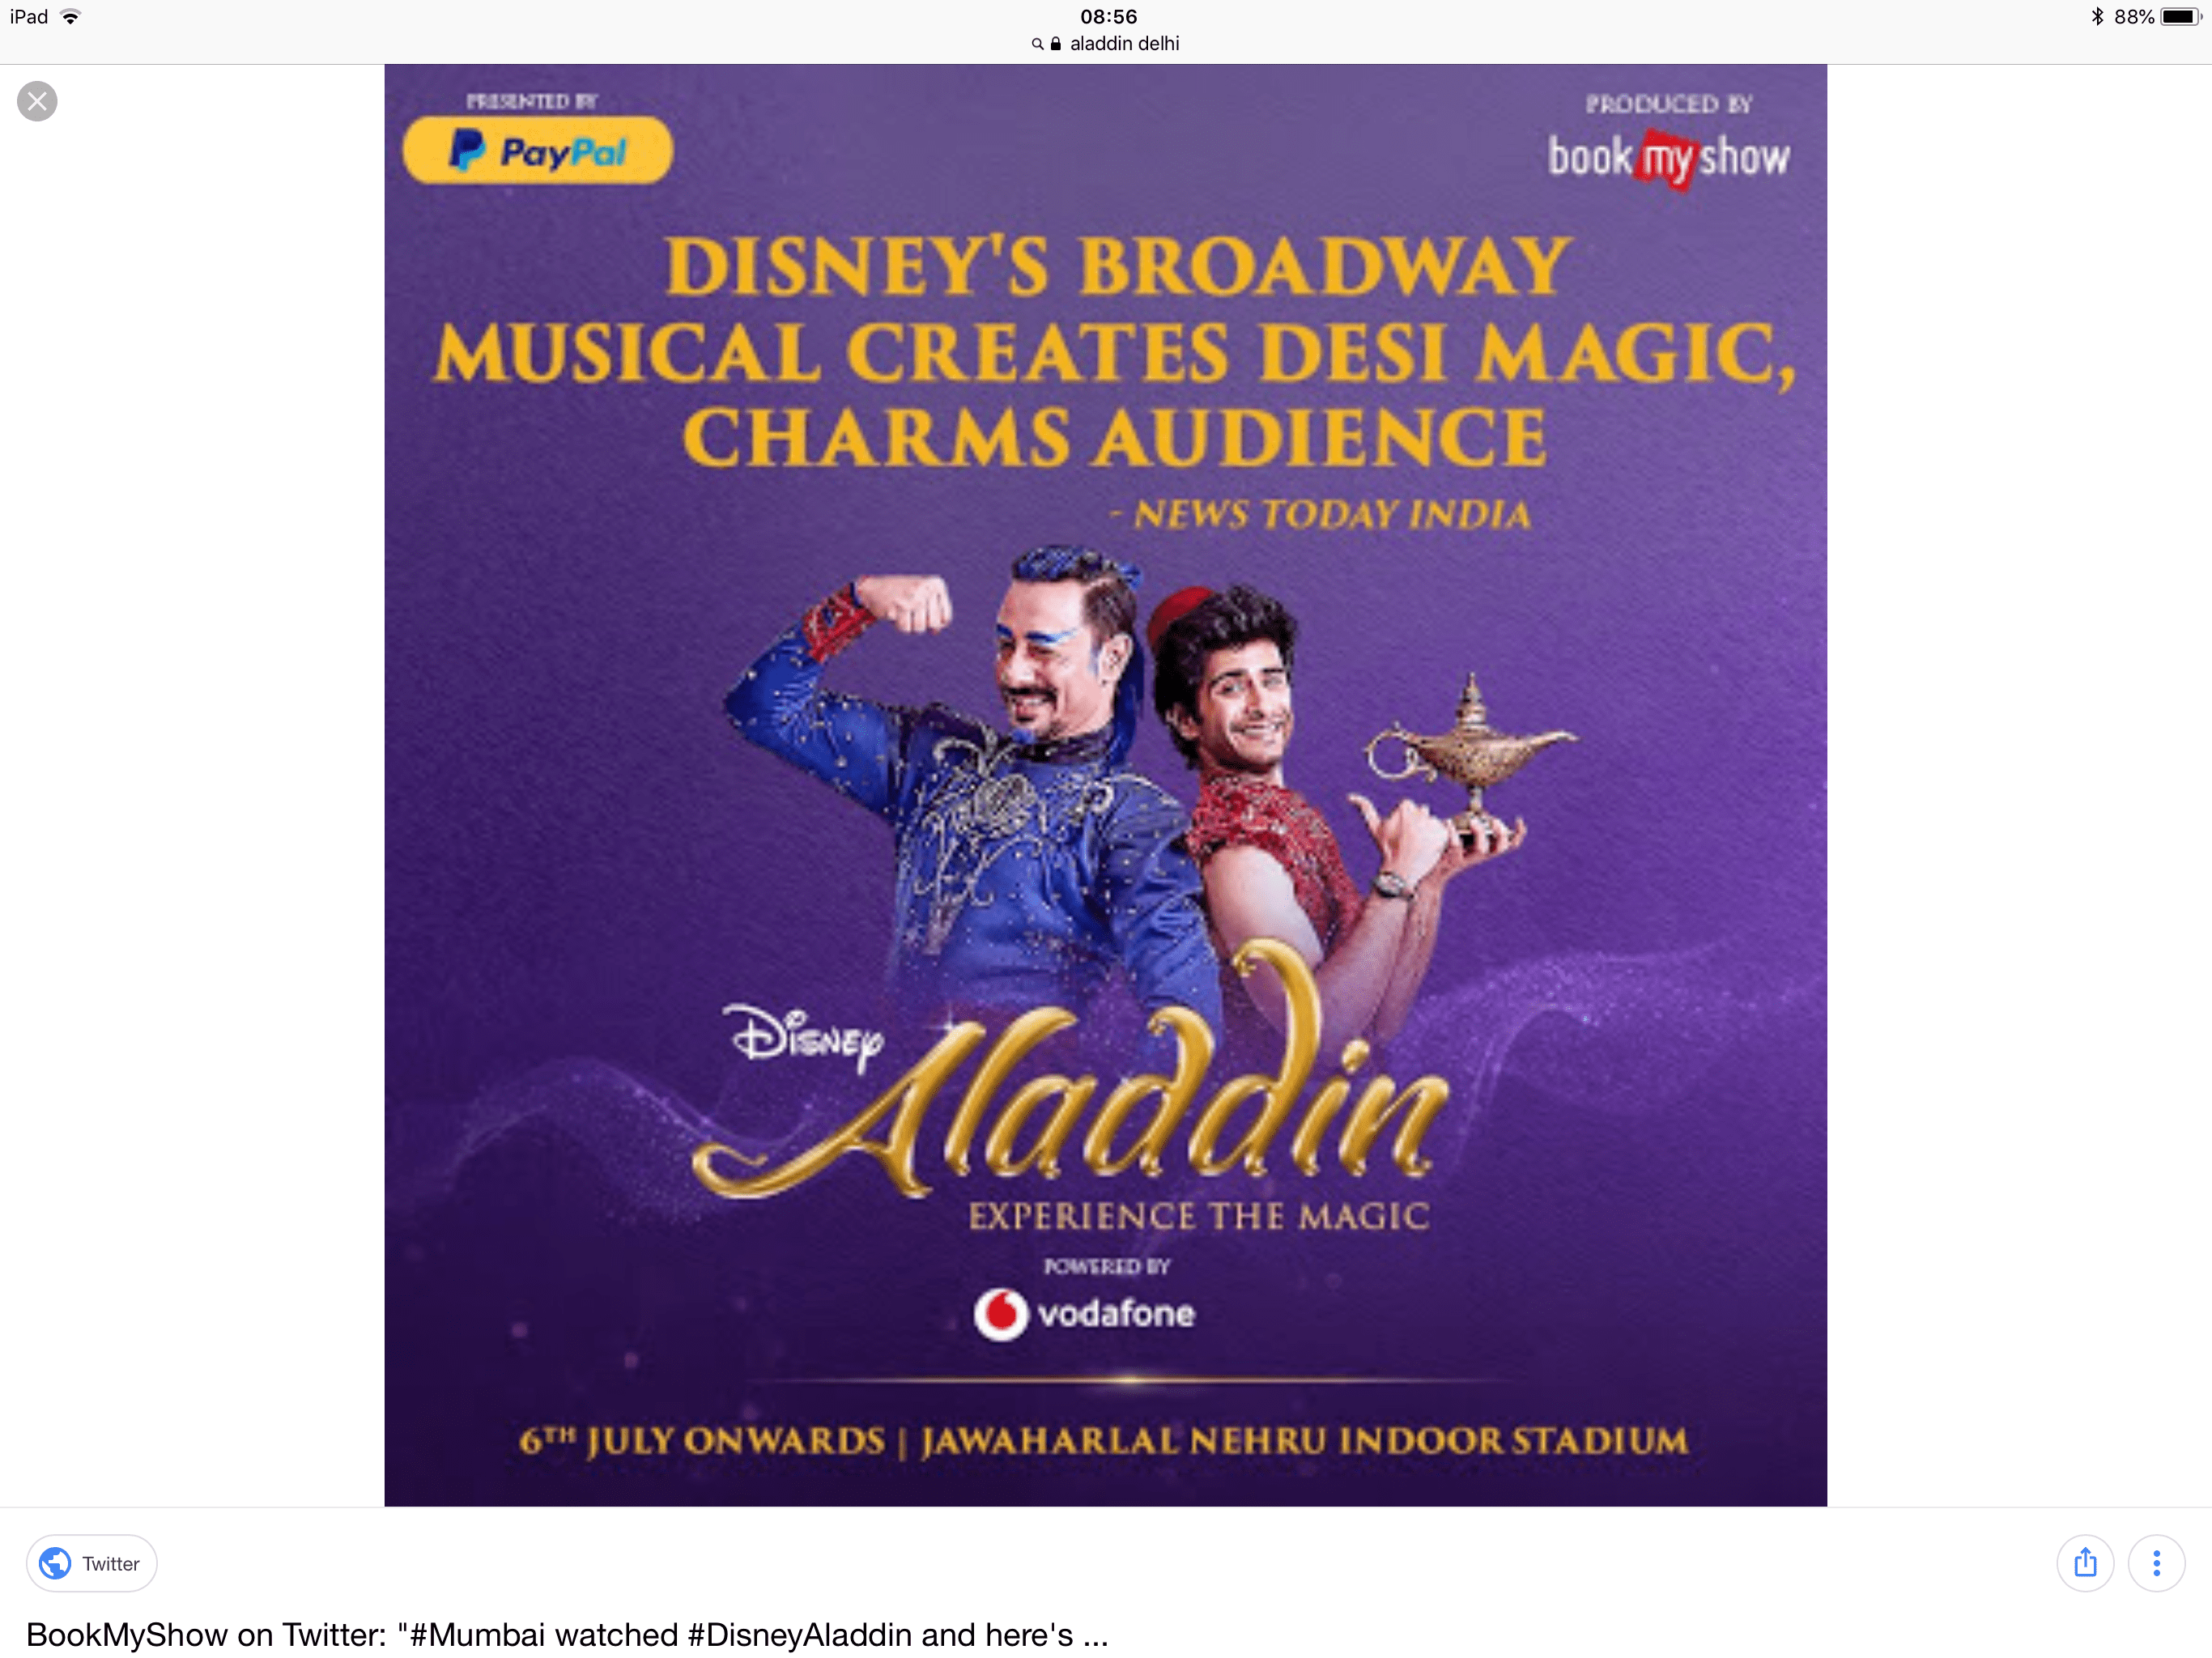 Aladdin in New Delhi